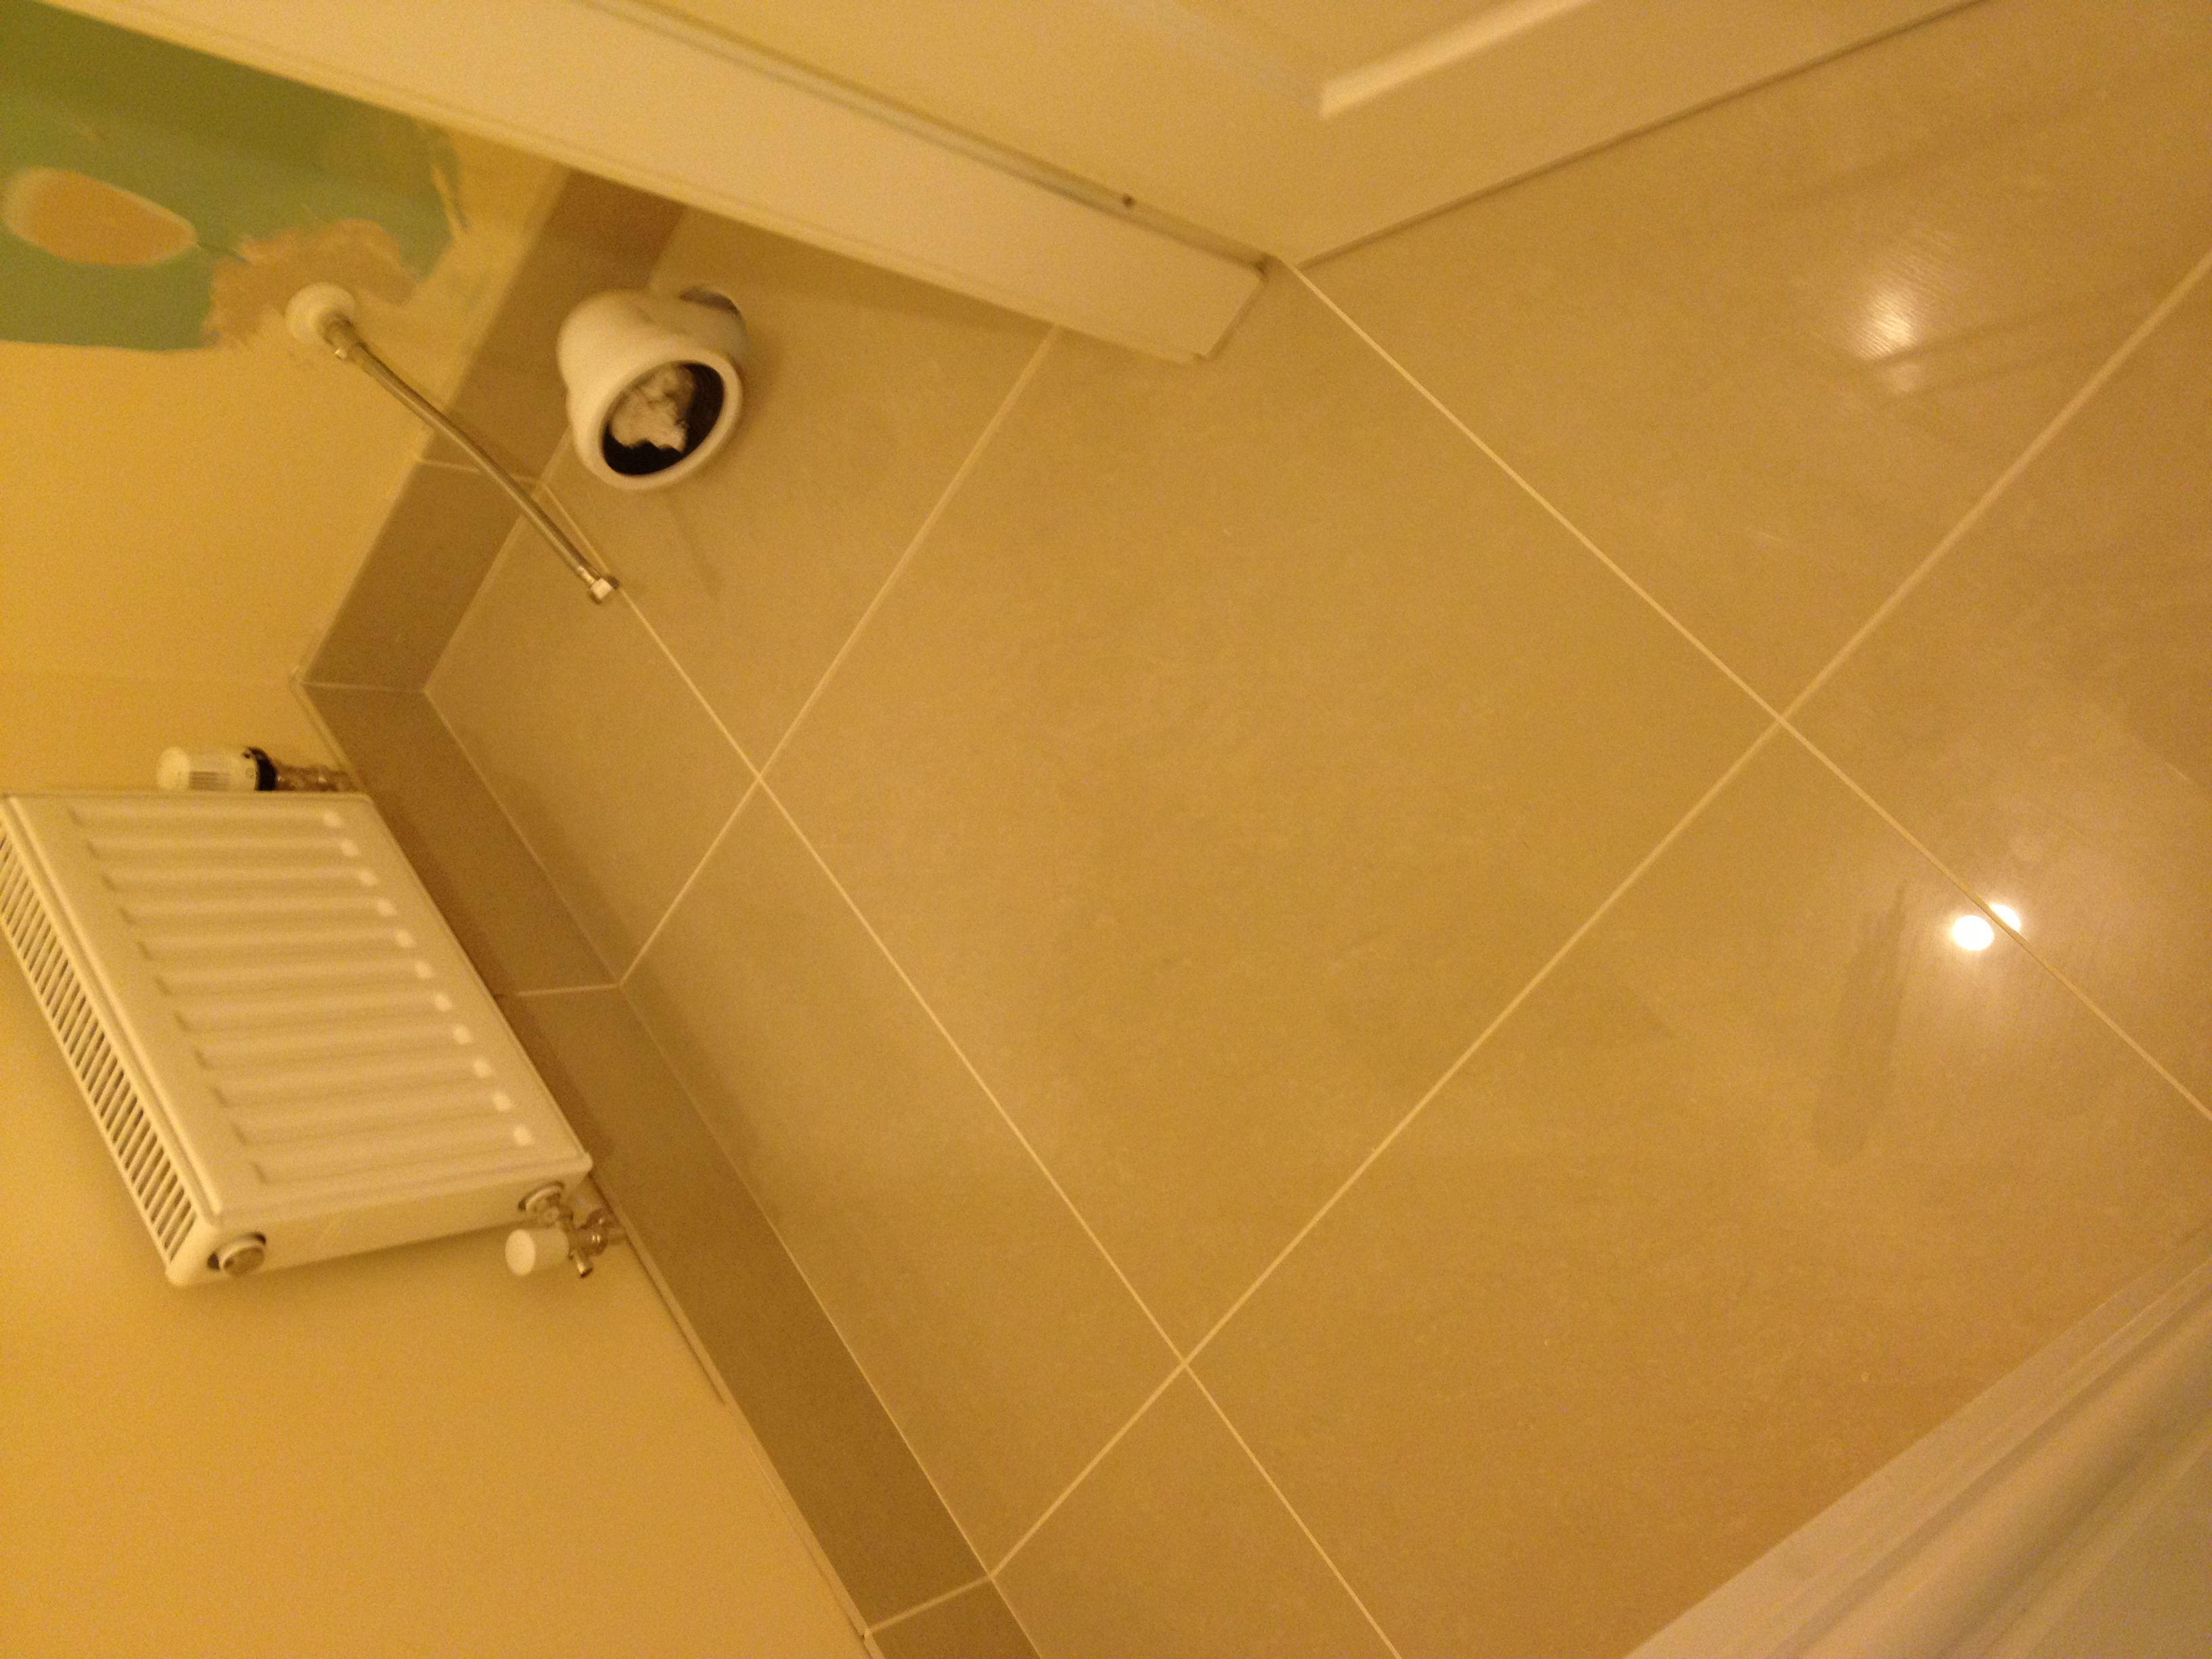 How To Screed A Floor >> Tiled skirting/upstands - Floor Tiles & Tiling - BuildHub.org.uk